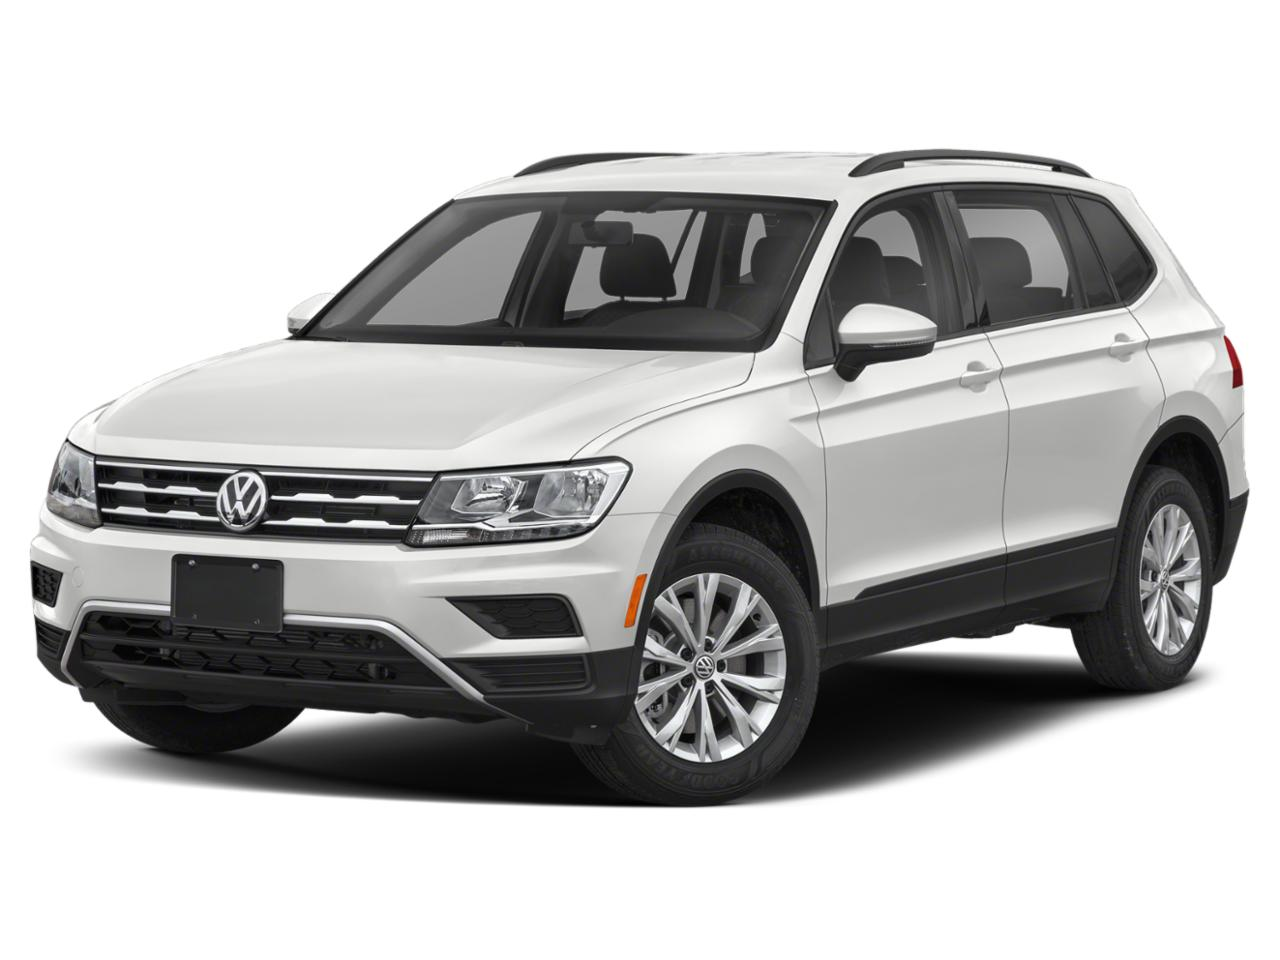 2020 Volkswagen Tiguan Vehicle Photo in Union City, GA 30291